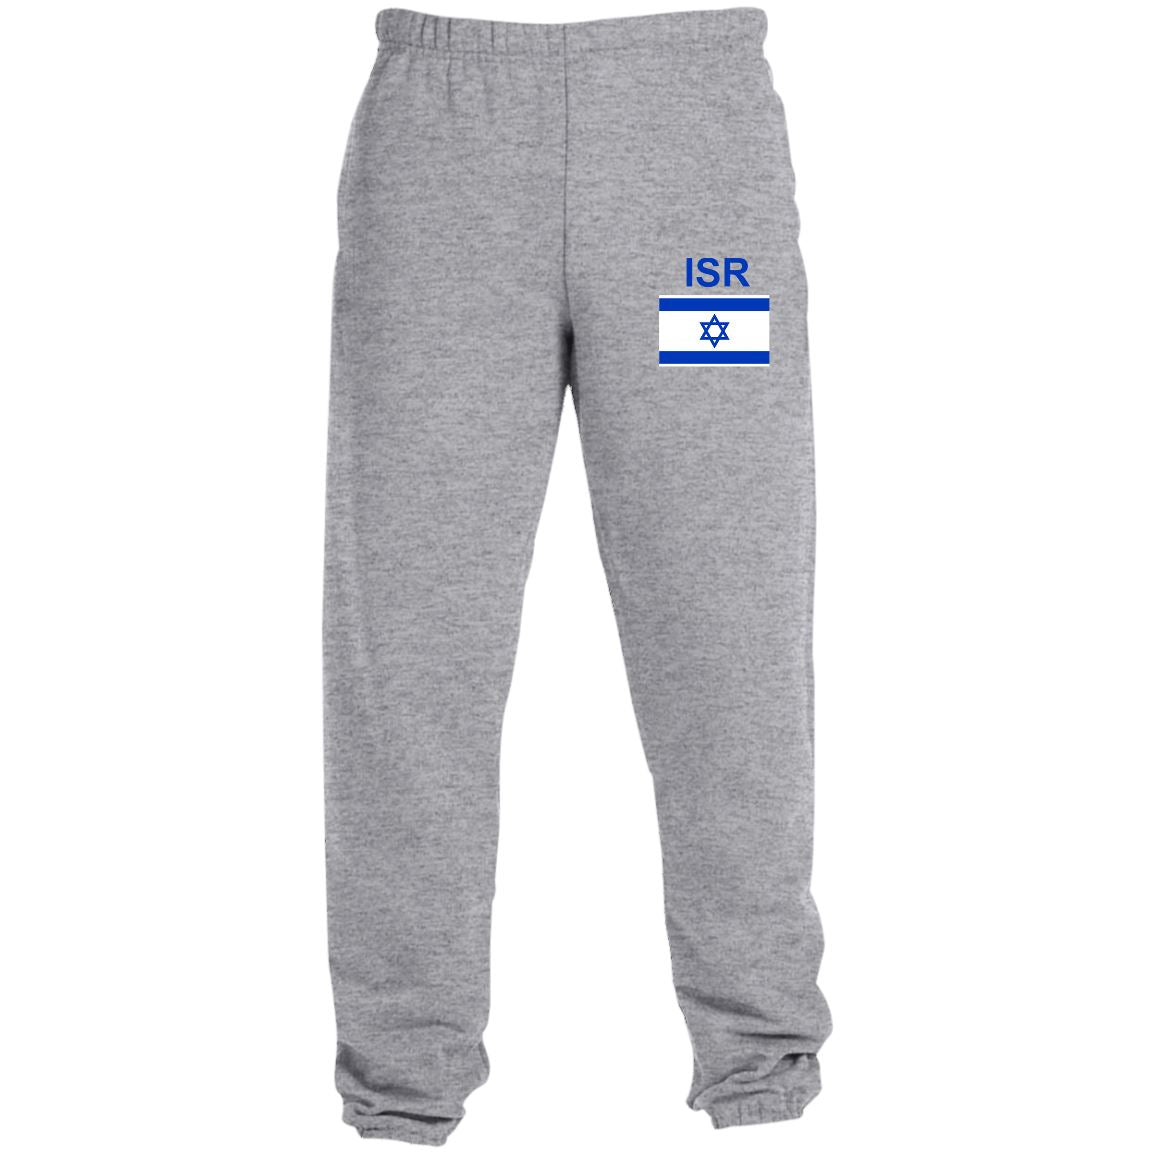 Israeli Designer Sweatpants with Pockets Pants Oxford Grey S